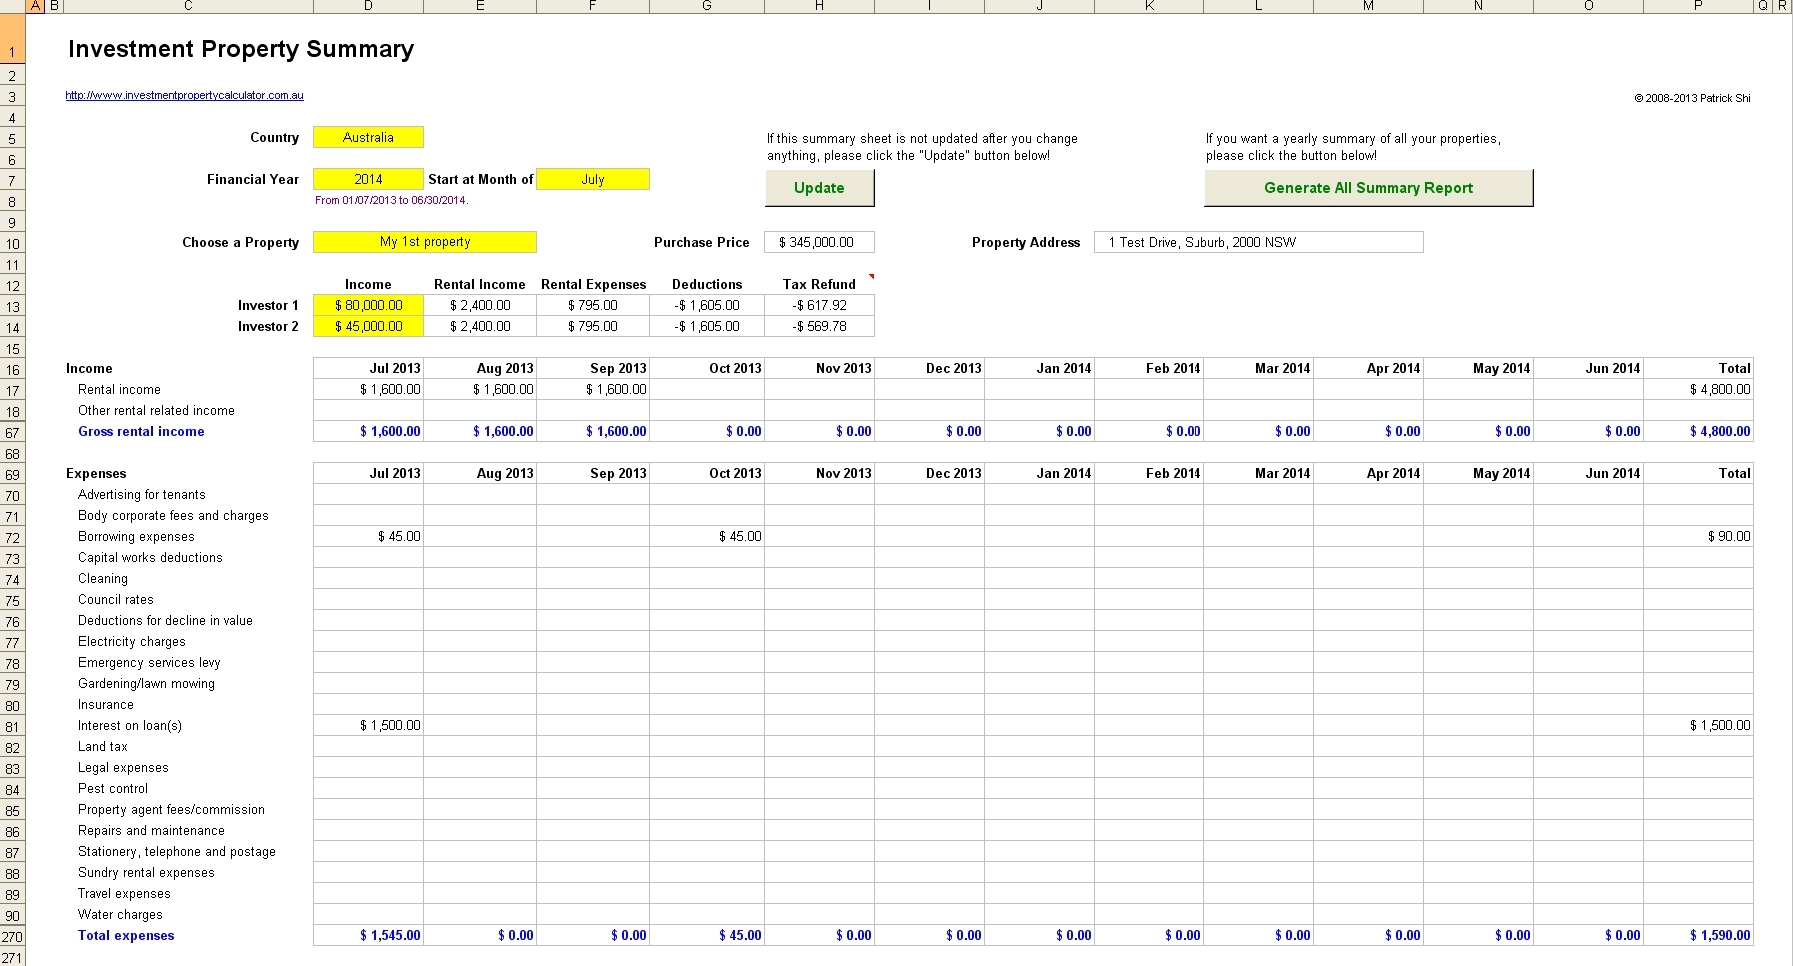 Free Rental Income Spreadsheet Template | Natural Buff Dog For Free To Rental Property Management Spreadsheet Template